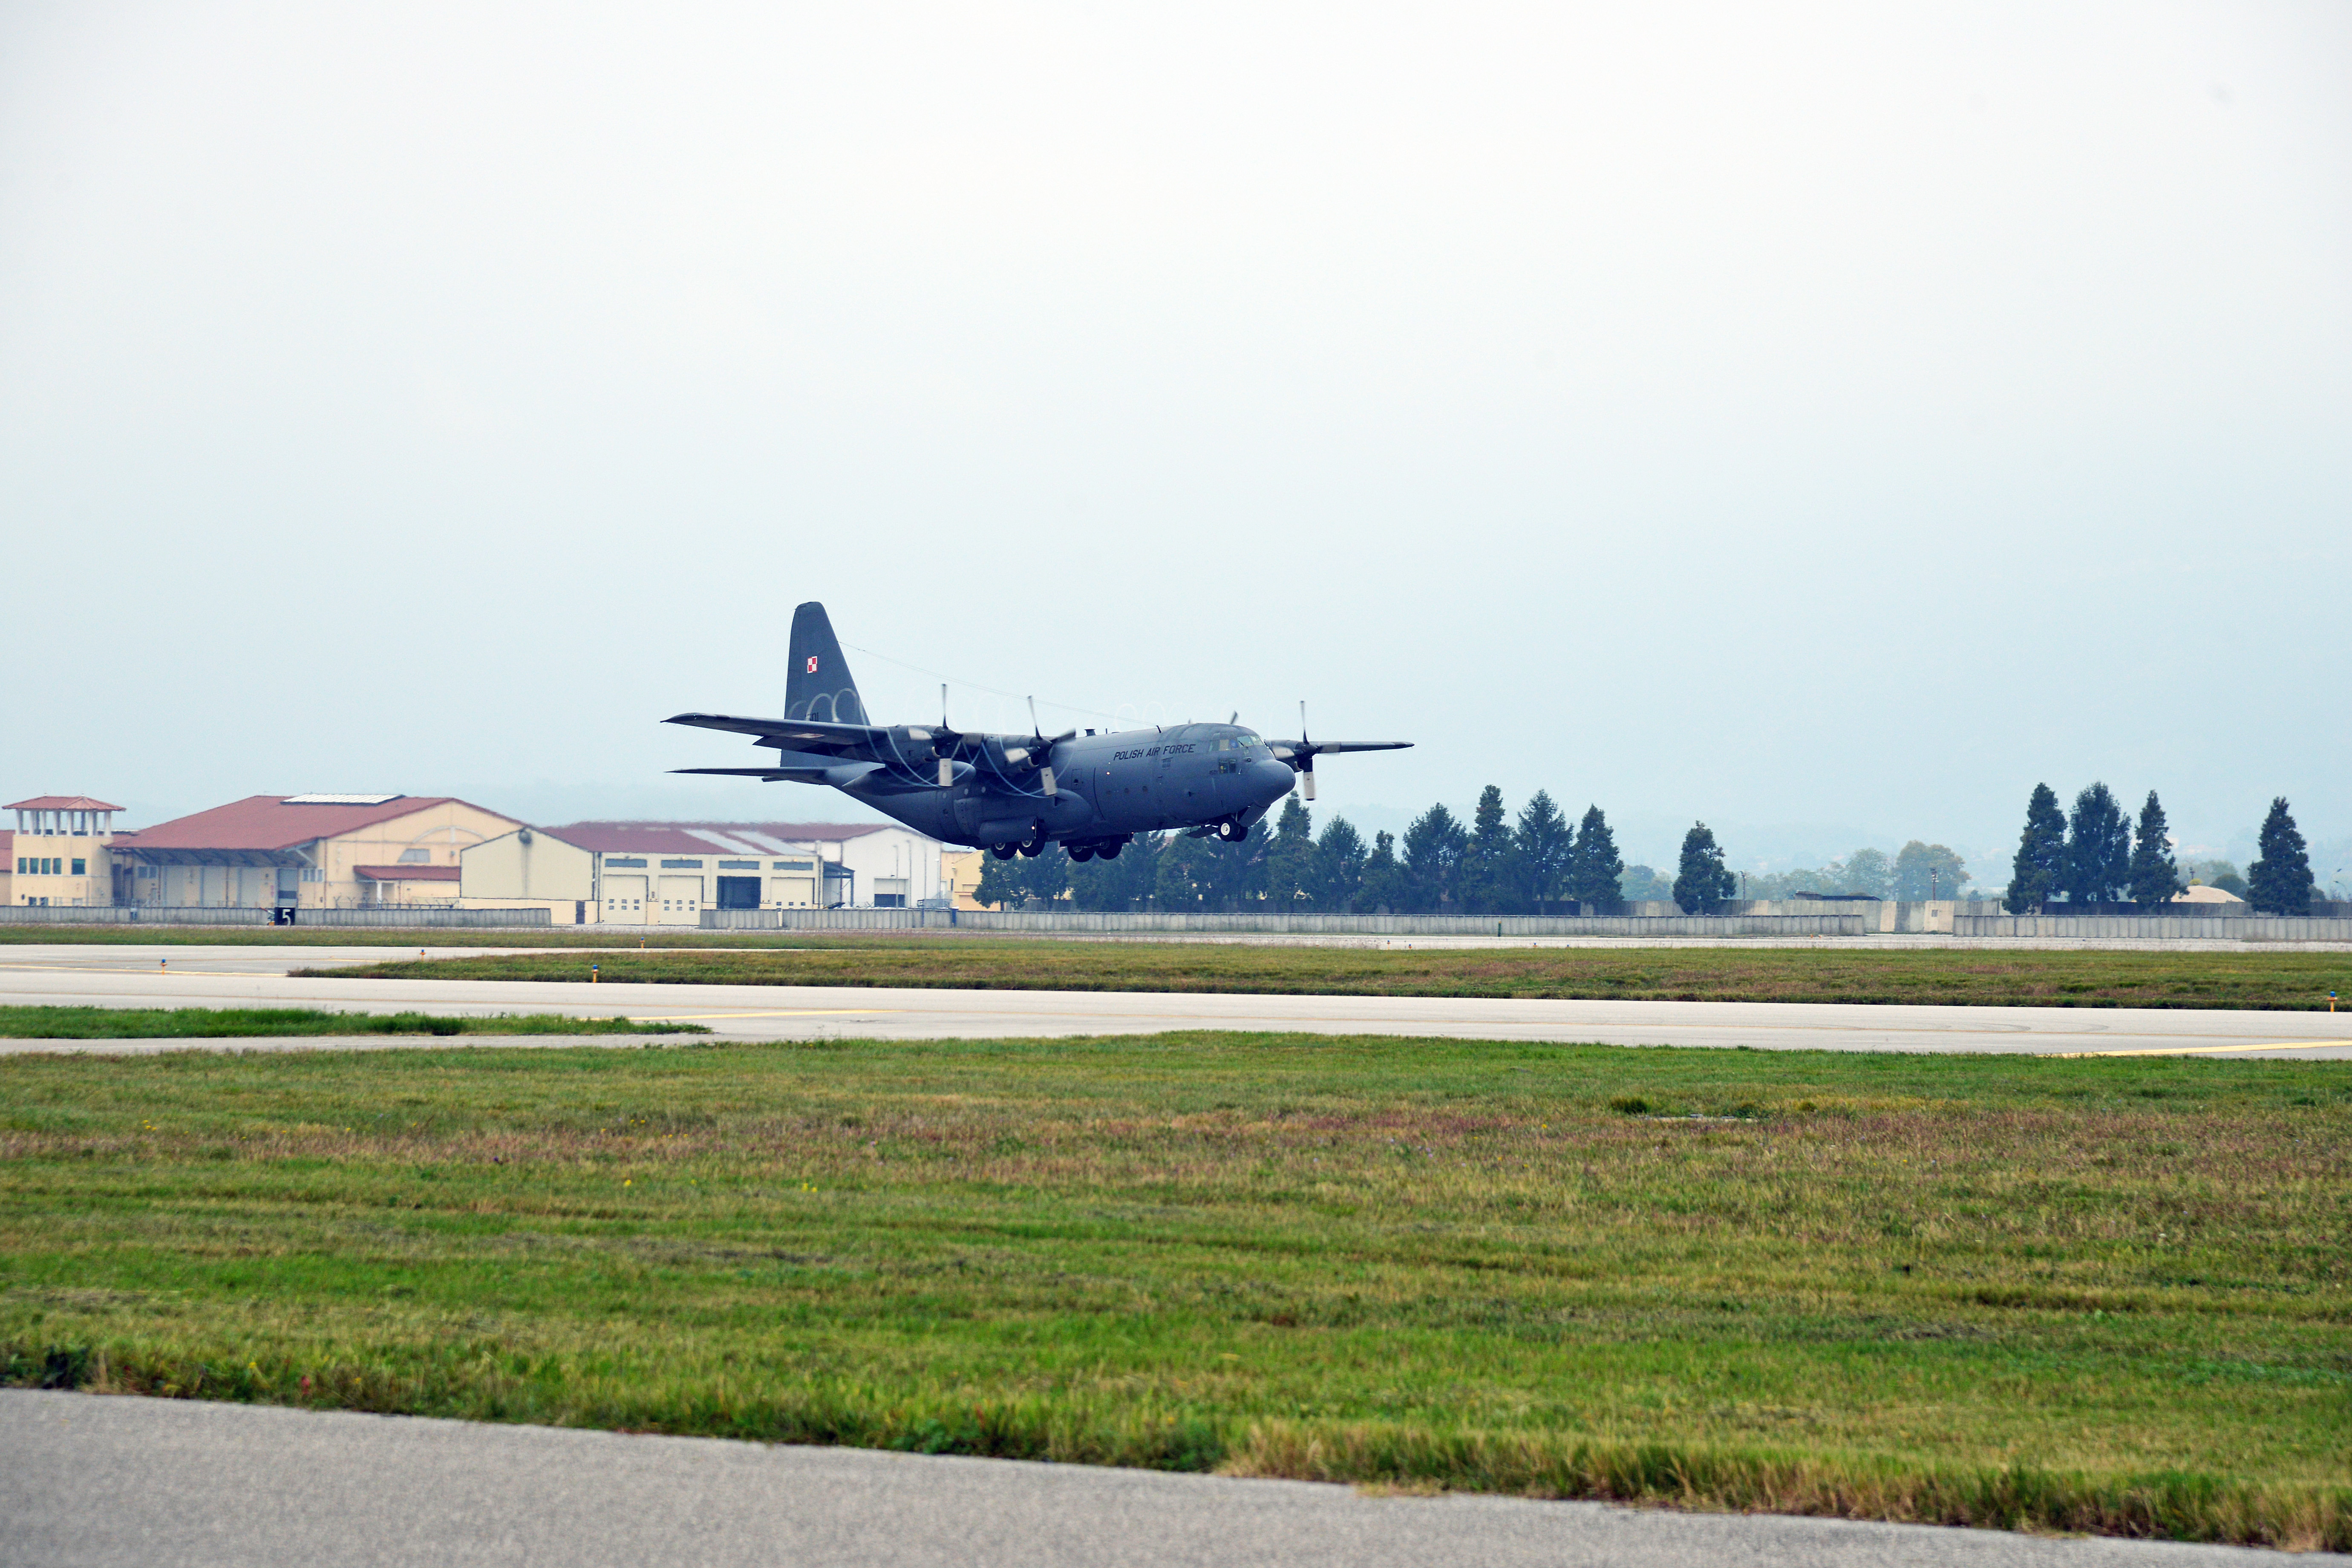 A Polish Air Force C-130 Hercules from the 33rd ATB, takes off from Aviano Air Base, in Pordenone, Italy Oct. 11, 2017 during Exercise Swift Response 2017, Phase 2. Swift Response links to Exercise Saber Guardian 17, a U.S. Army Europe-led, multinational exercise that spans across Bulgaria, Hungary, and Romania with more than 25,000 service members from 22 allied and partner nations. (U.S. Army Photos by Visual Information Specialist Paolo Bovo/Released)